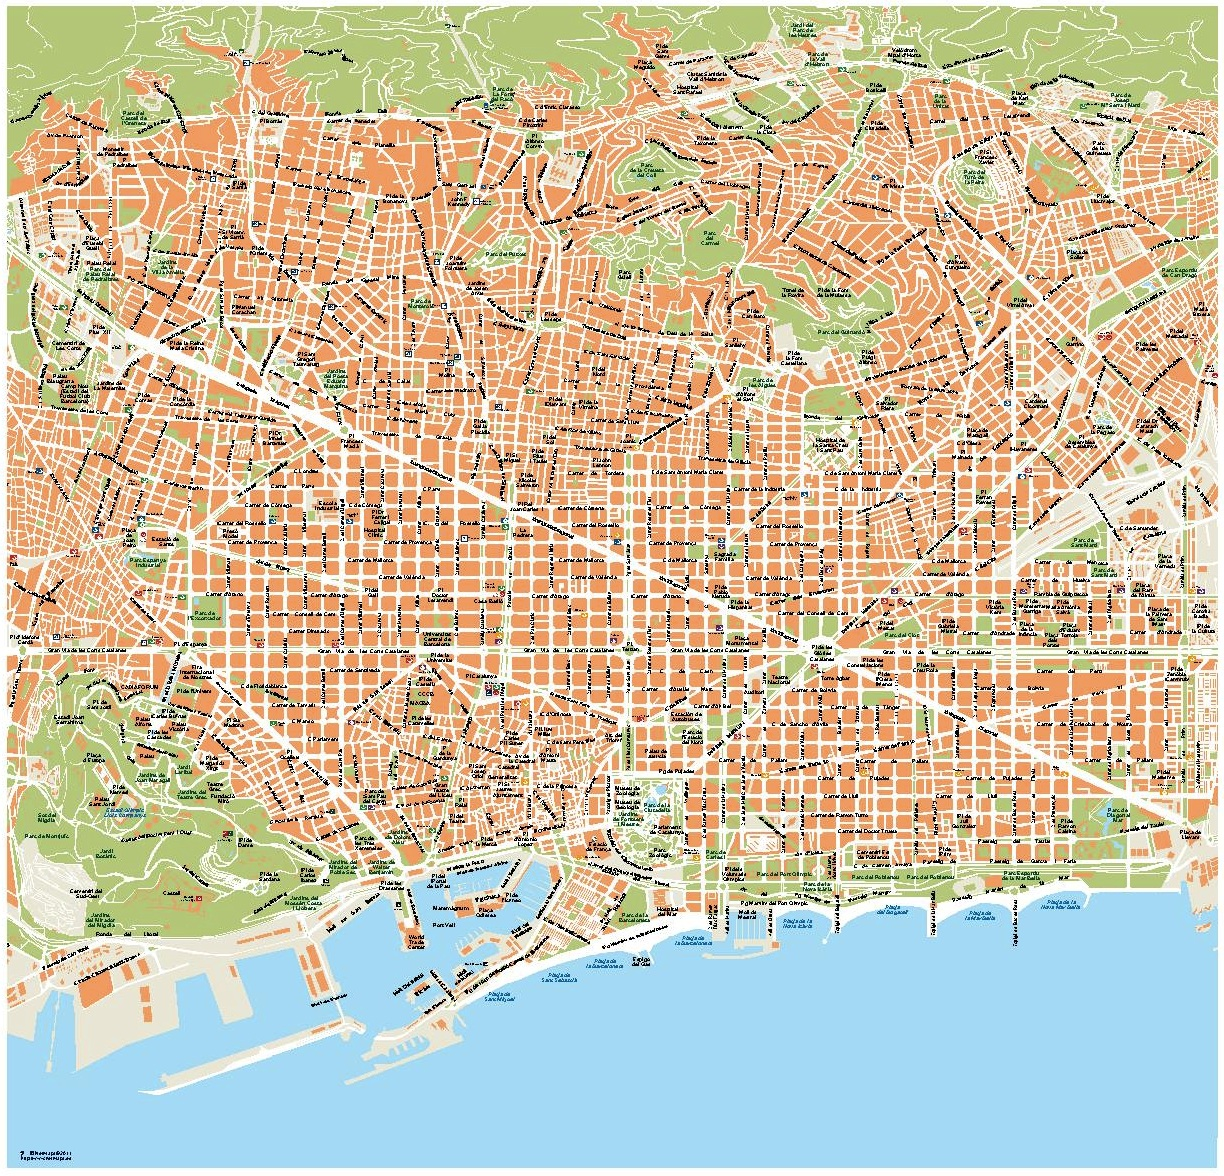 Barcelona complete City map